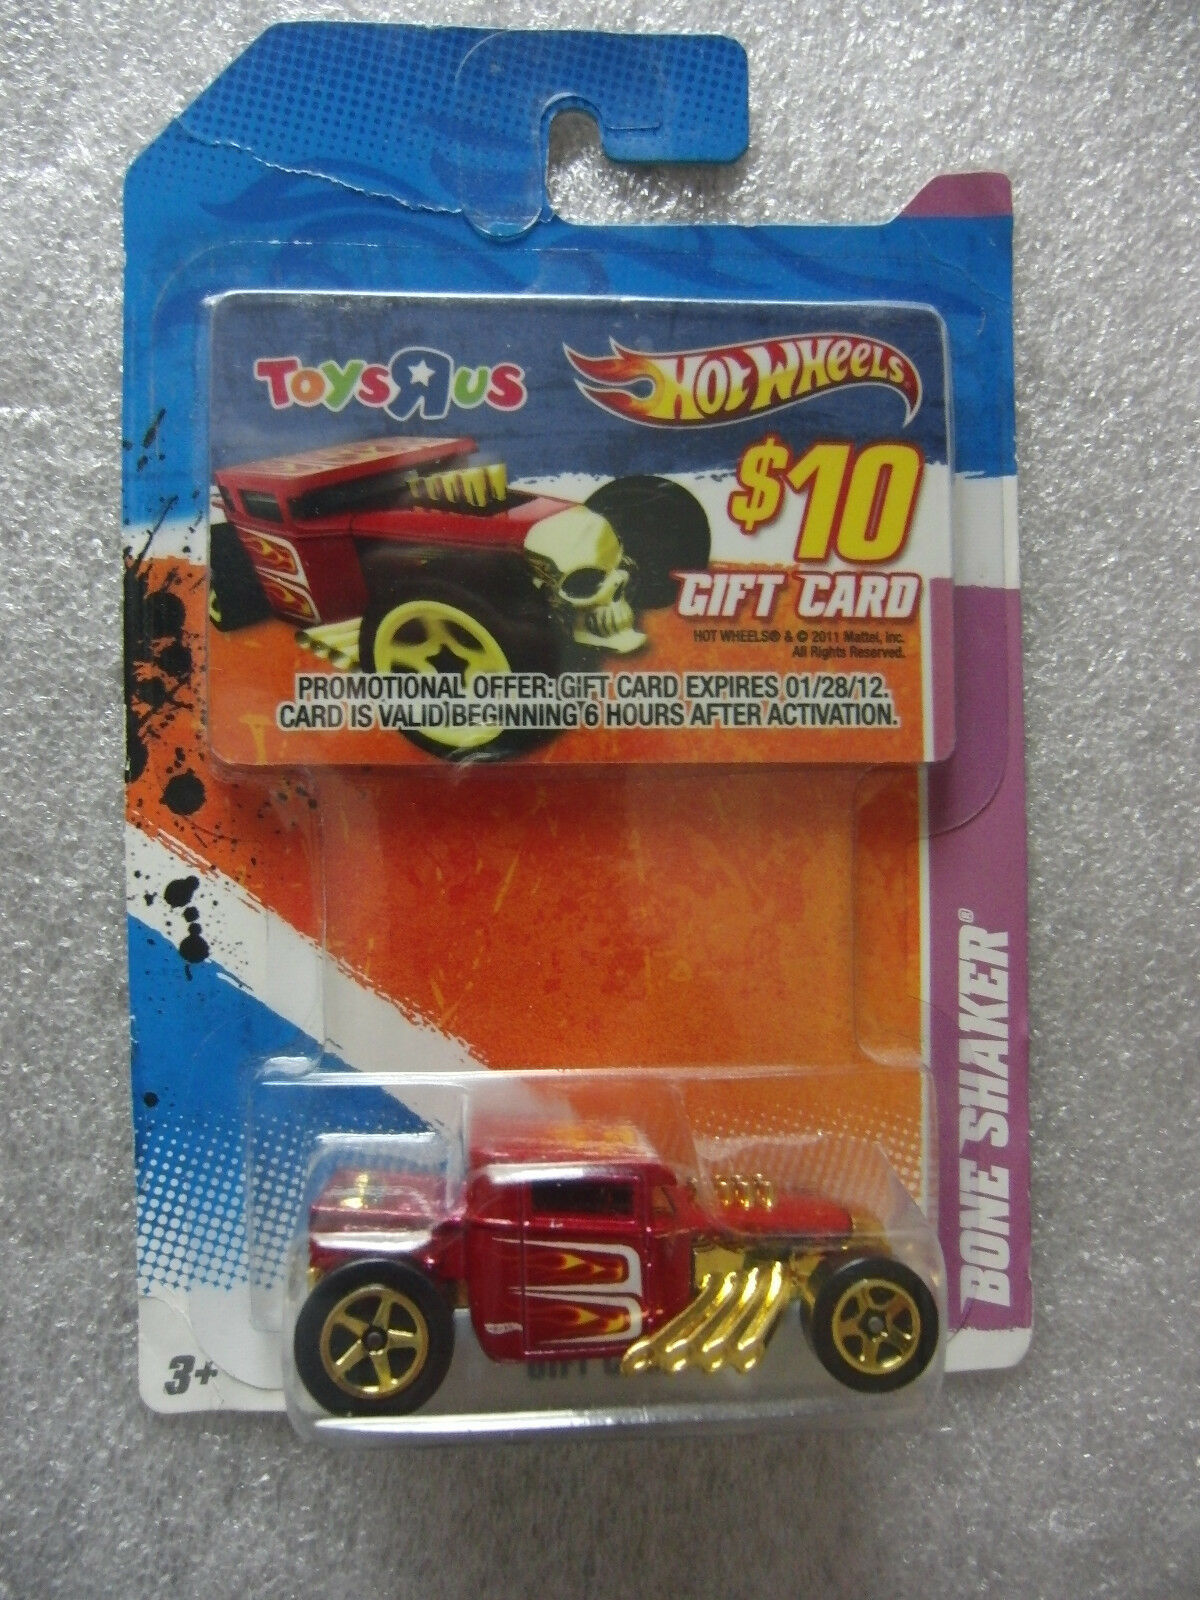 Hot Wheels 2011 - BONE SHAKER - Toy R Us Gift Card - HTF - Non-Mint Card